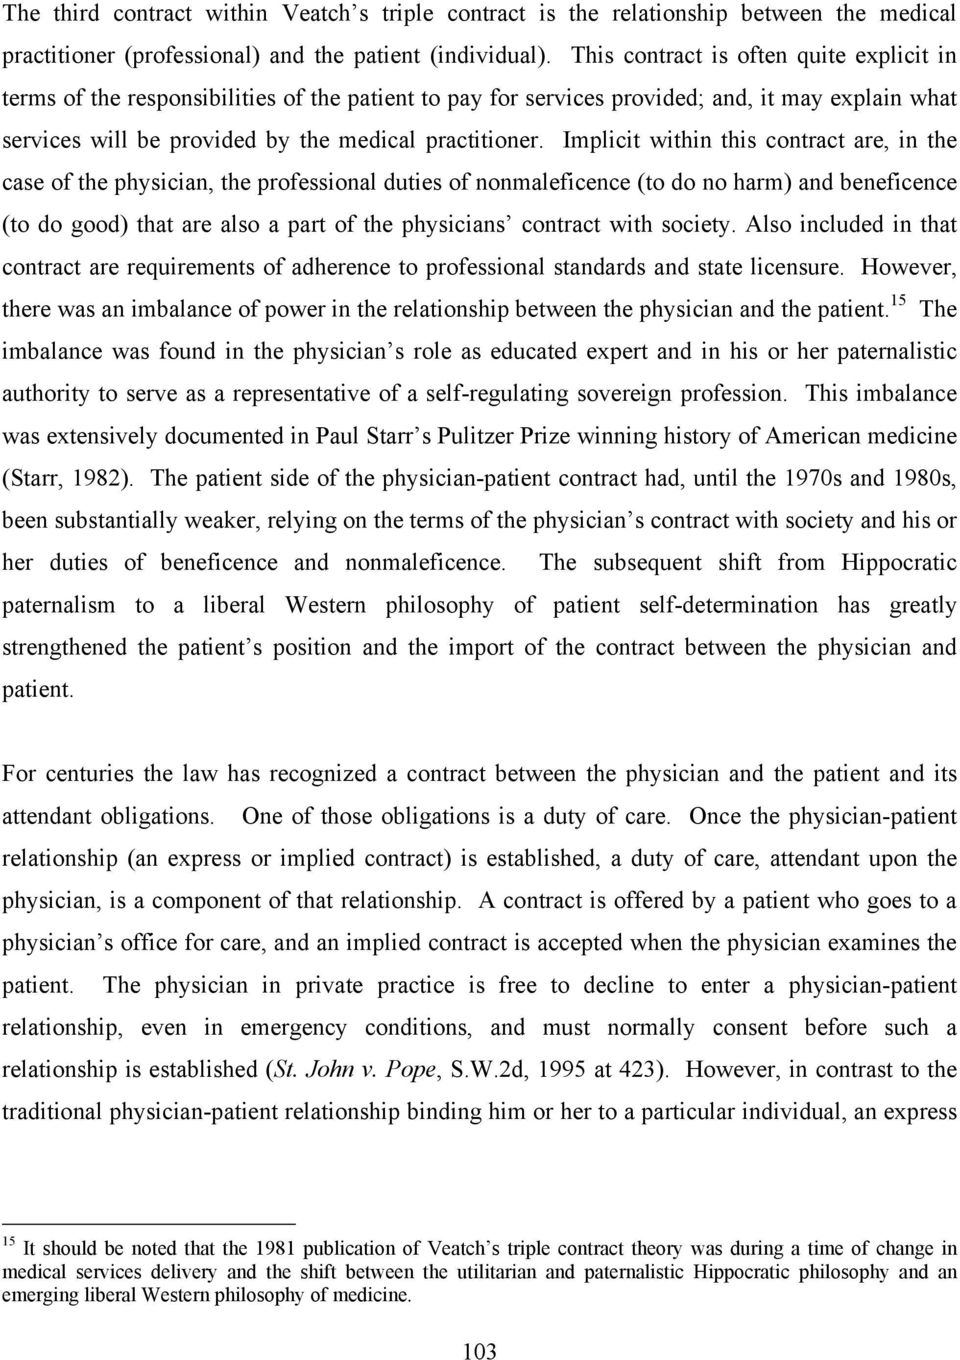 Implicit within this contract are, in the case of the physician, the professional duties of nonmaleficence (to do no harm) and beneficence (to do good) that are also a part of the physicians contract